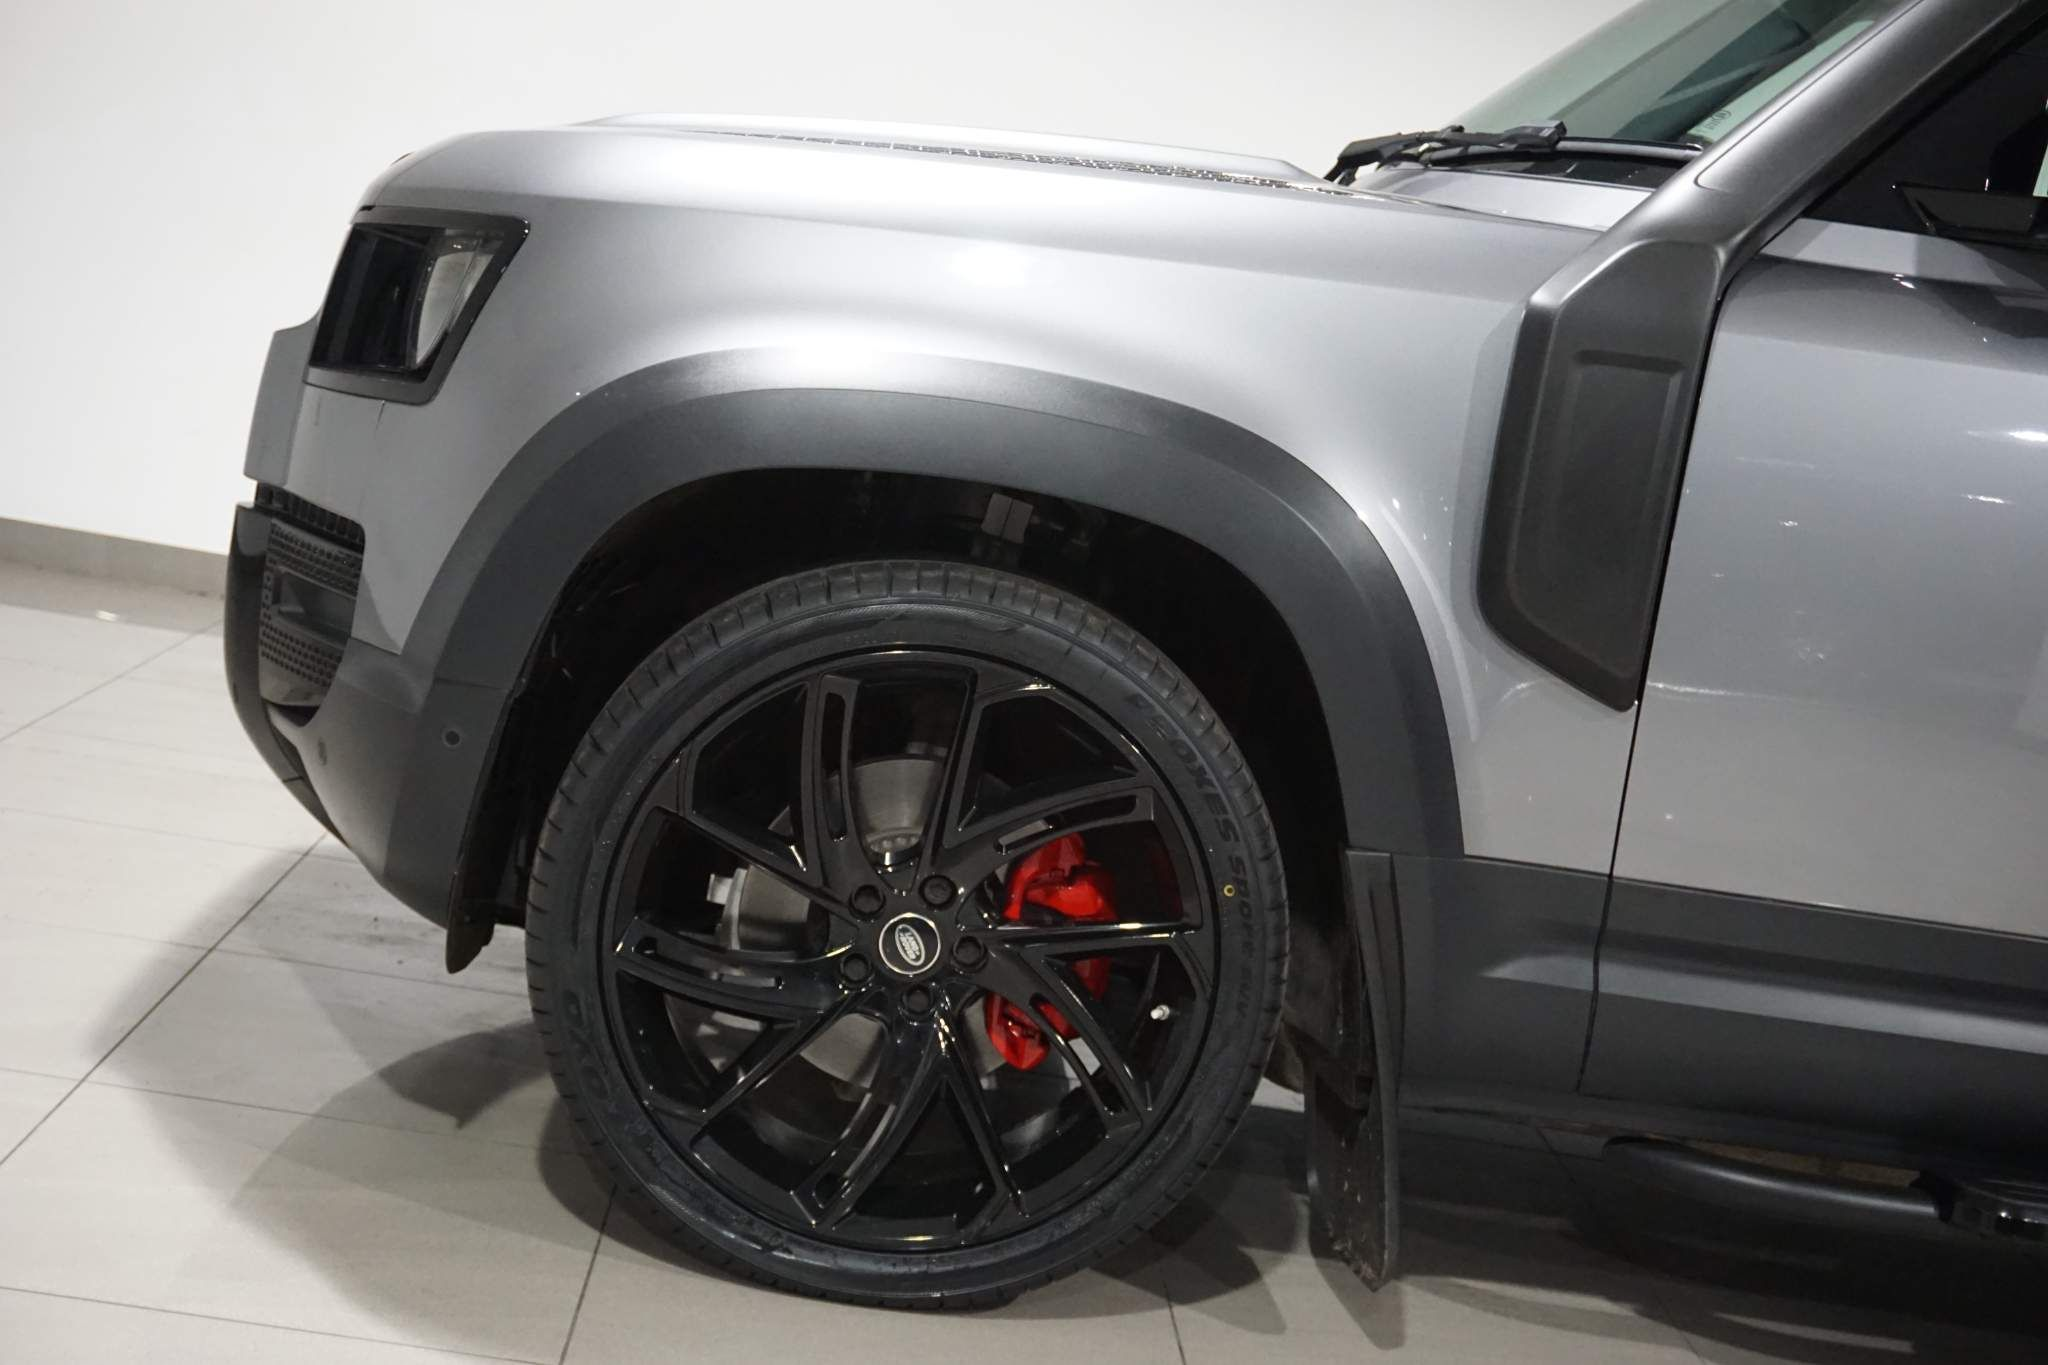 Land Rover Defender 110 3.0 D200 MHEV S Auto 4WD (s/s) 5dr